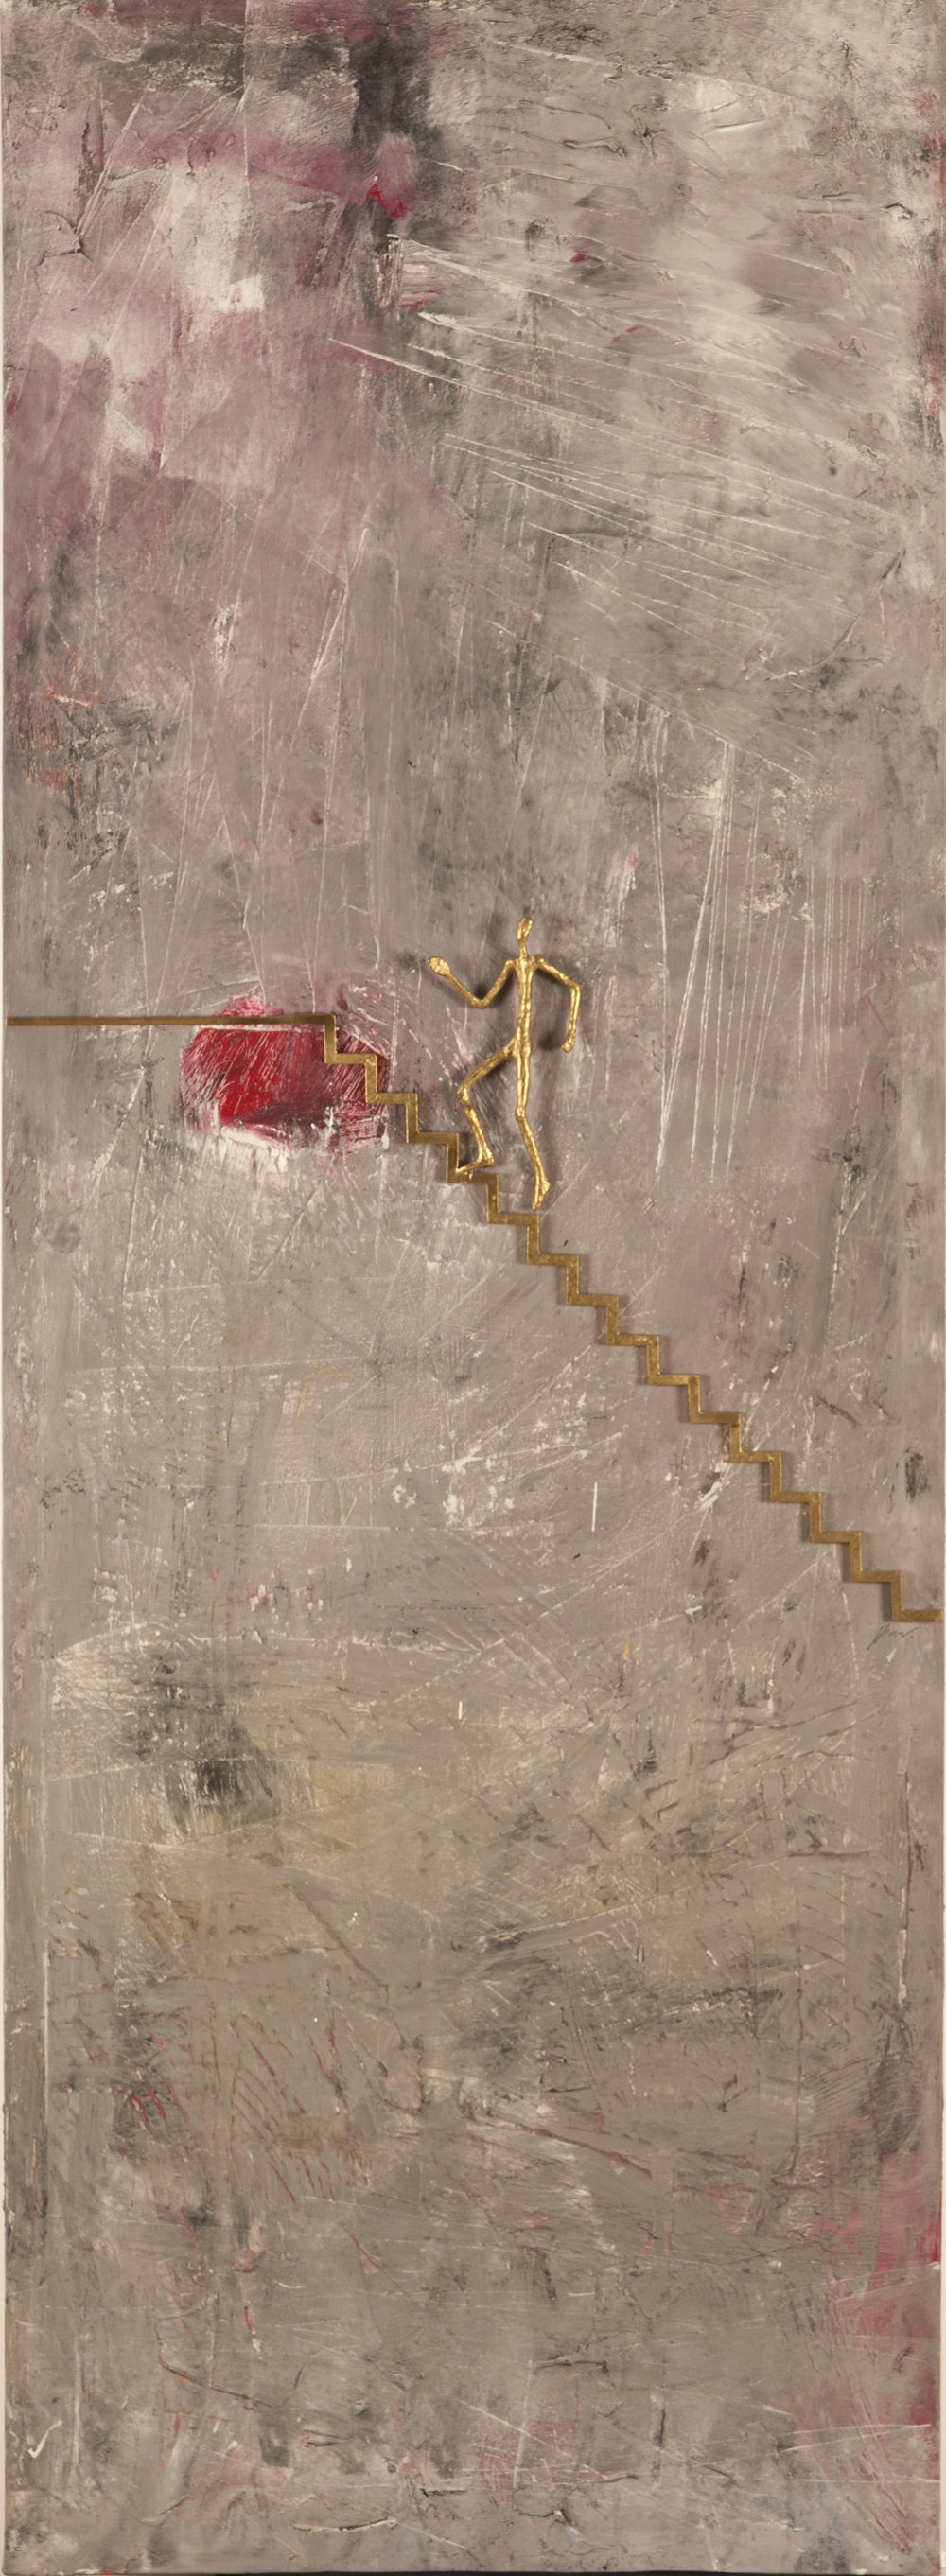 Climbing to Success 5  mix media on canvas size: 70 x 160 Unique